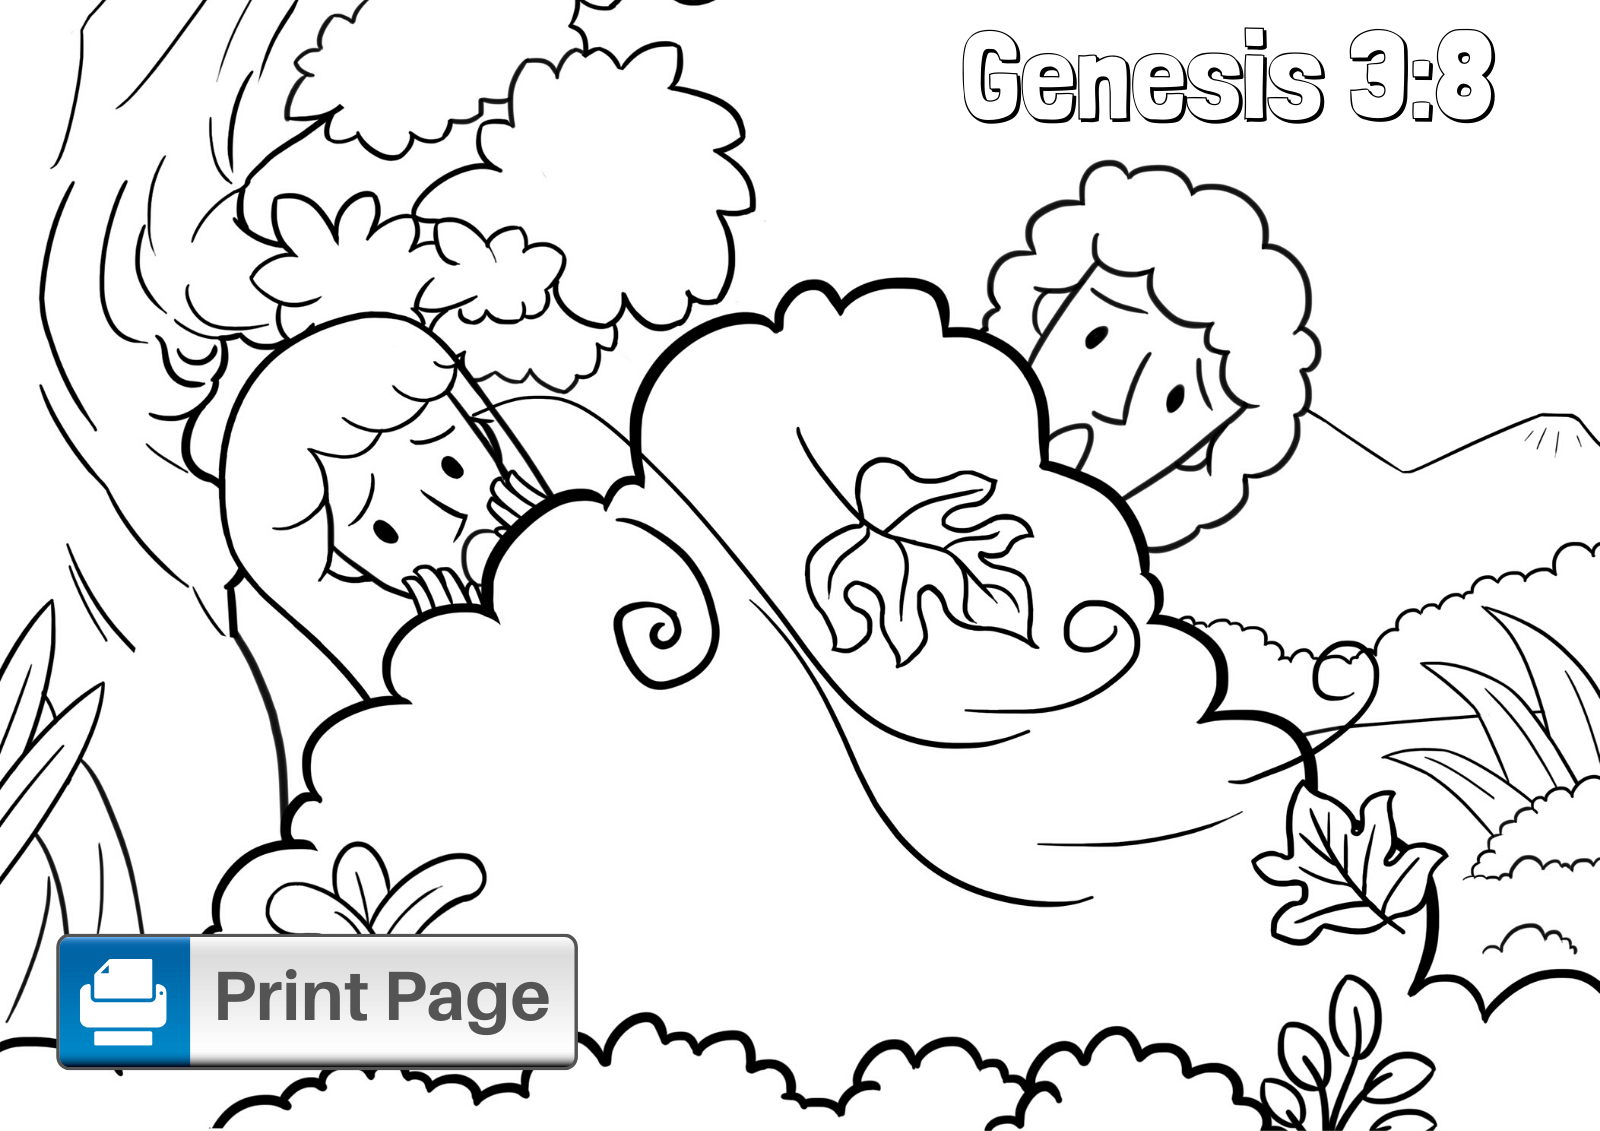 adam and eve coloring sheet adam and eve expelled from the garden of eden bible eve sheet adam coloring and